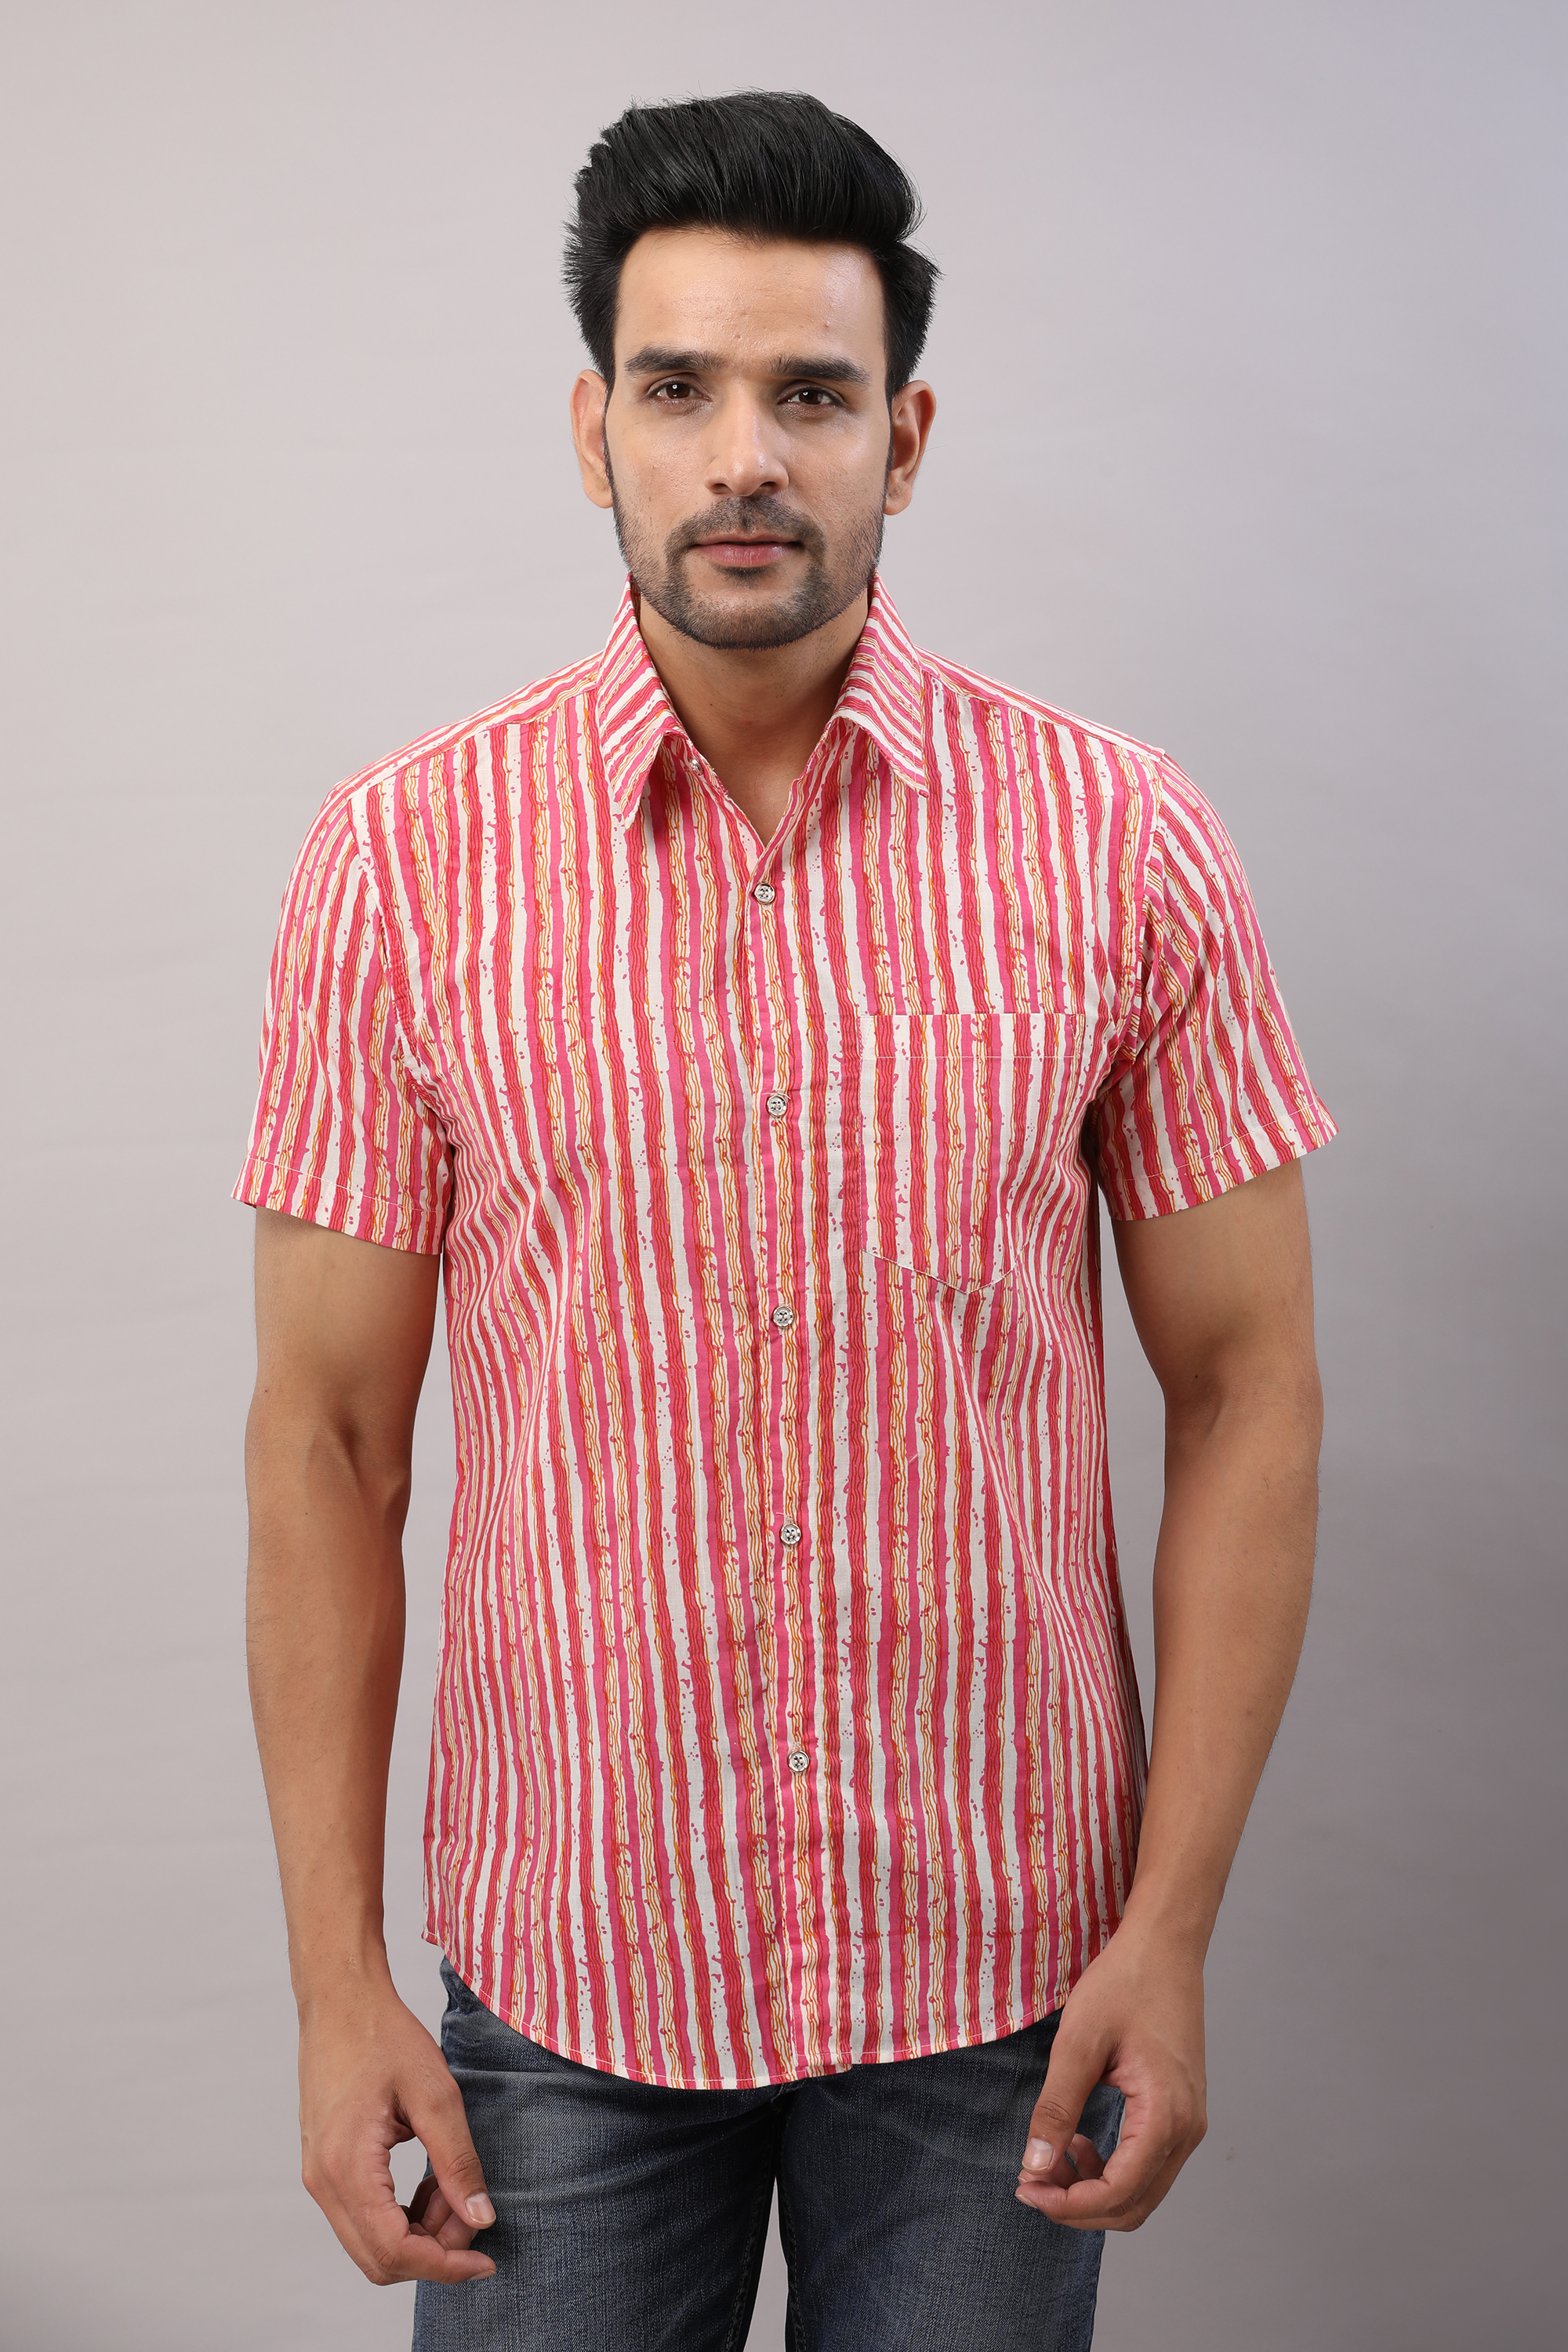 FrionKandy Cotton Striped Casual Pink Regular Shirt For Men - L